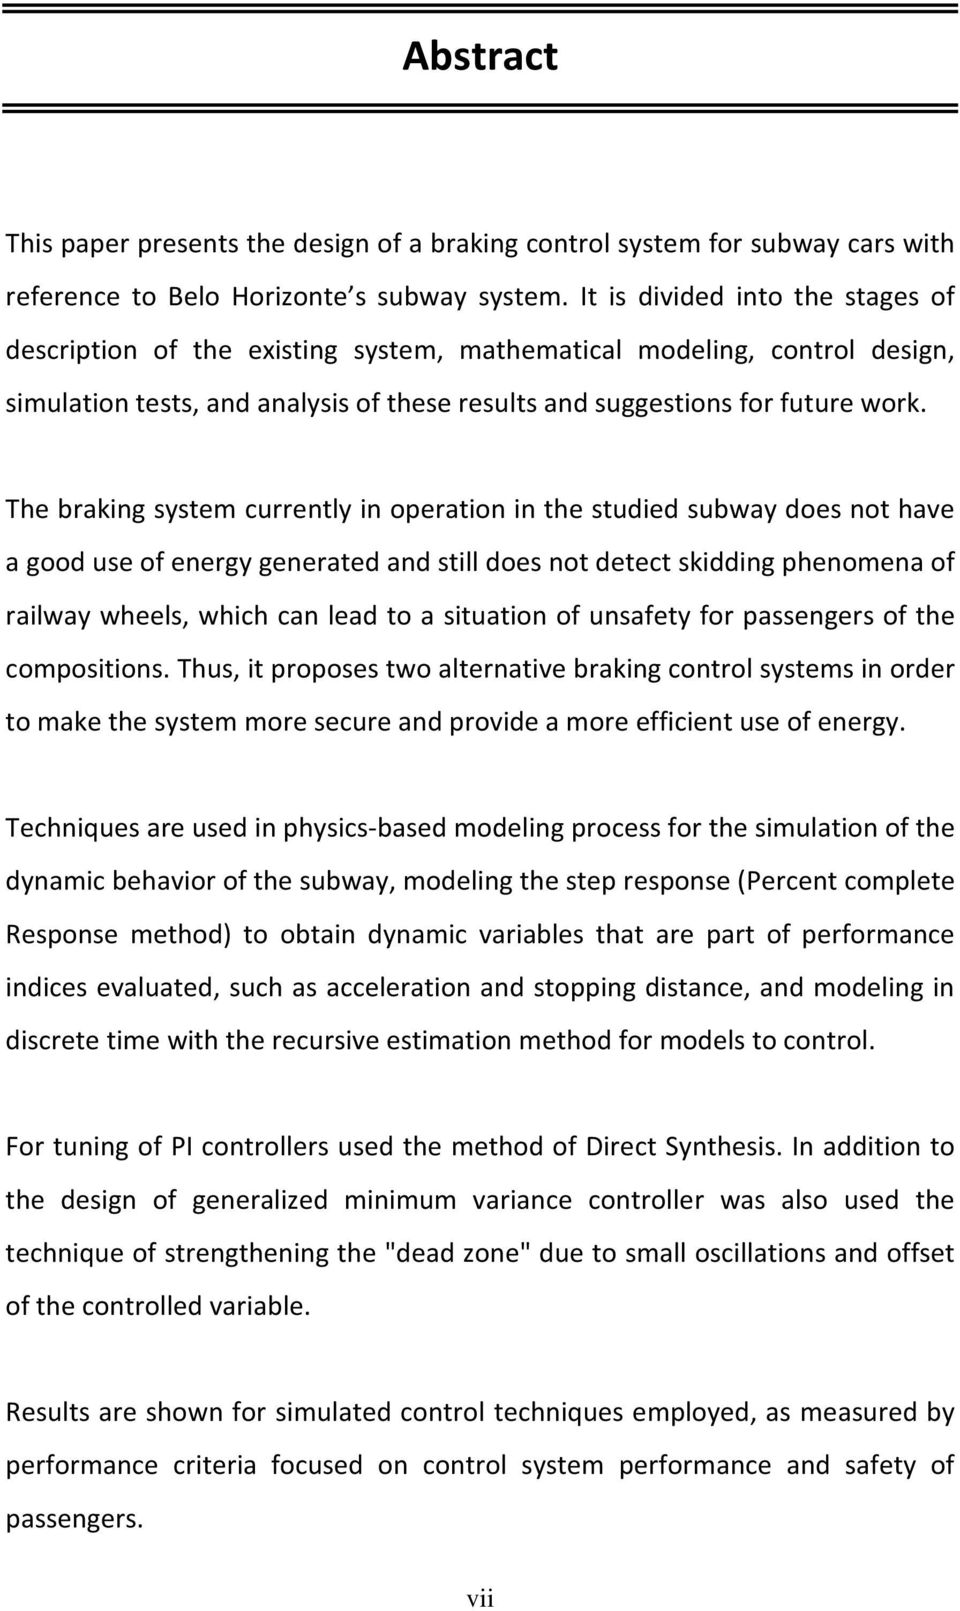 The braking system currently in operation in the studied subway does not have a good use of energy generated and still does not detect skidding phenomena of railway wheels, which can lead to a